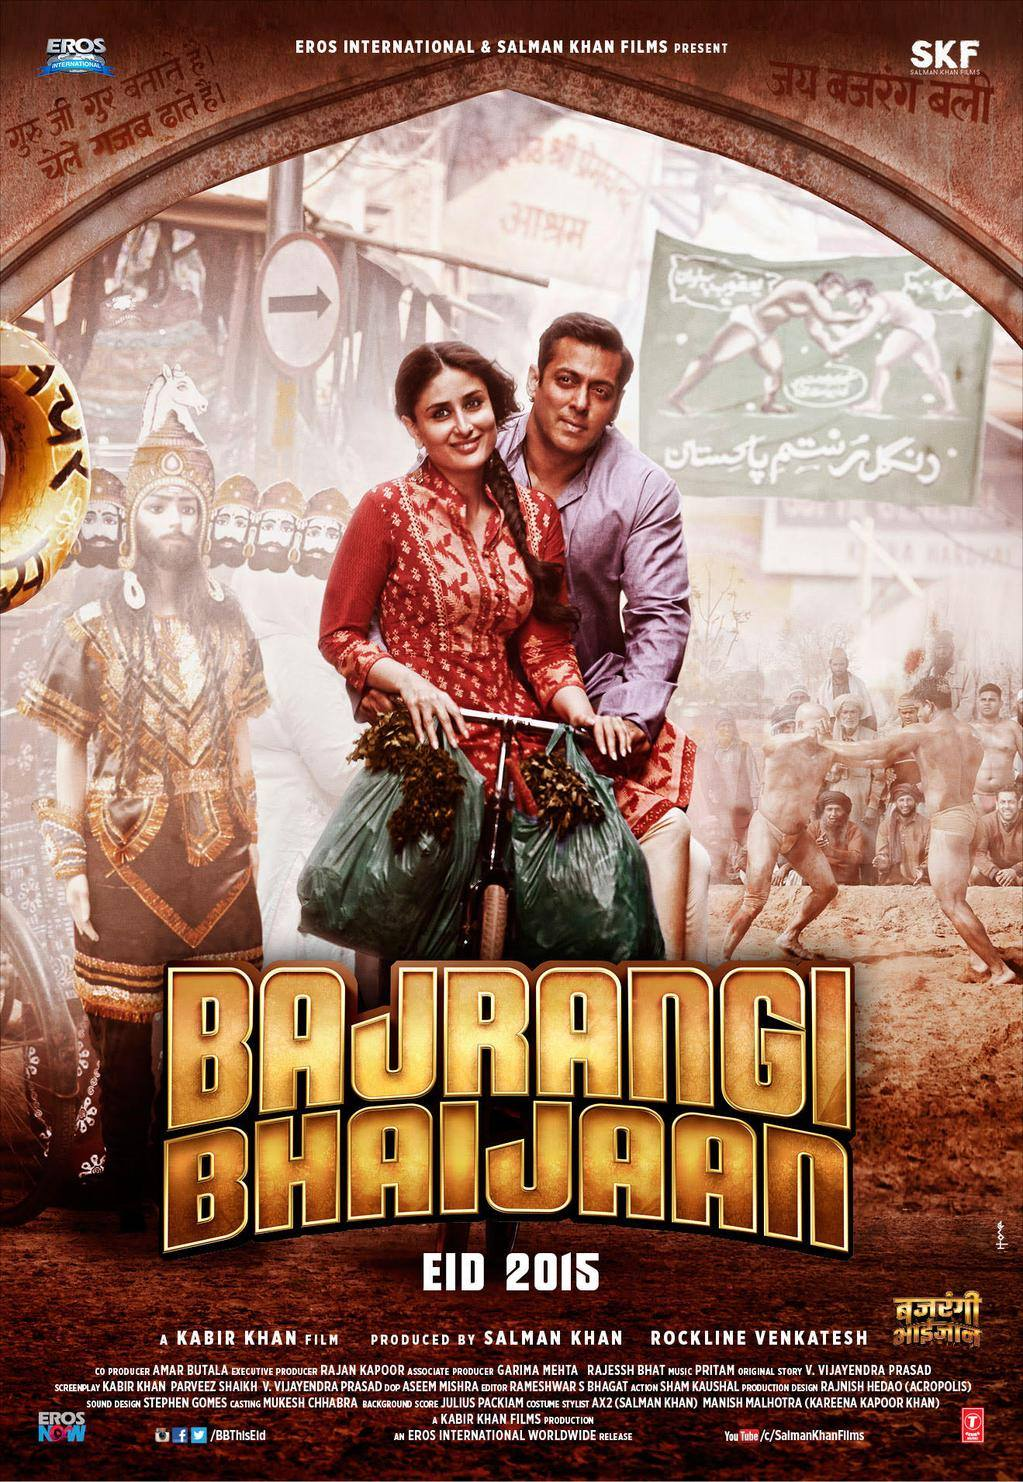 Bajrangi Bhaijaan Movie Poster Salman Khan, Kareena Kapoor